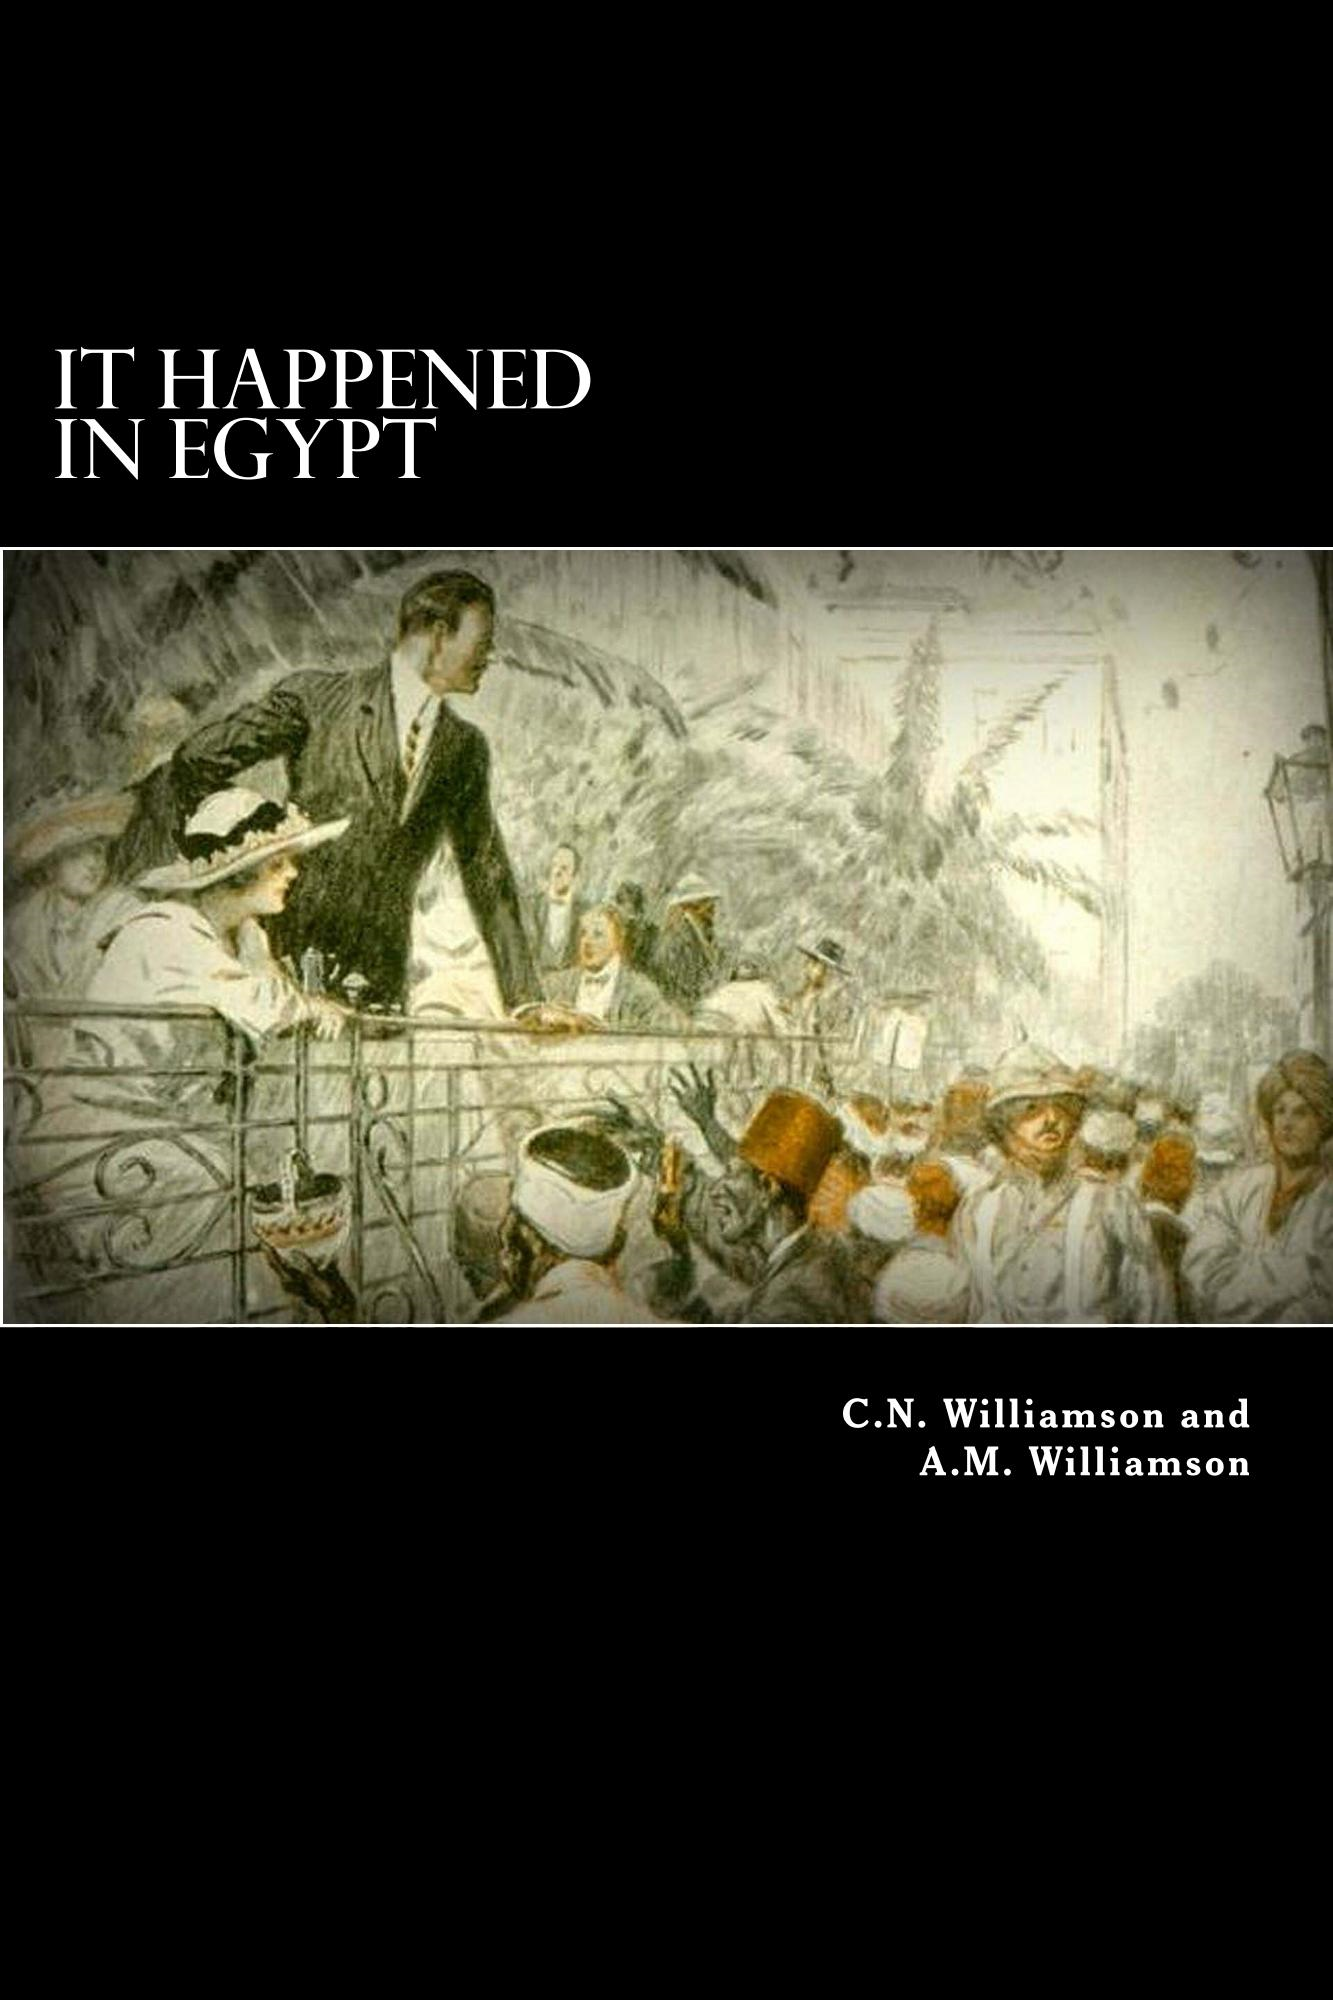 C.N. and A.M. Williamson - It Happened in Egypt